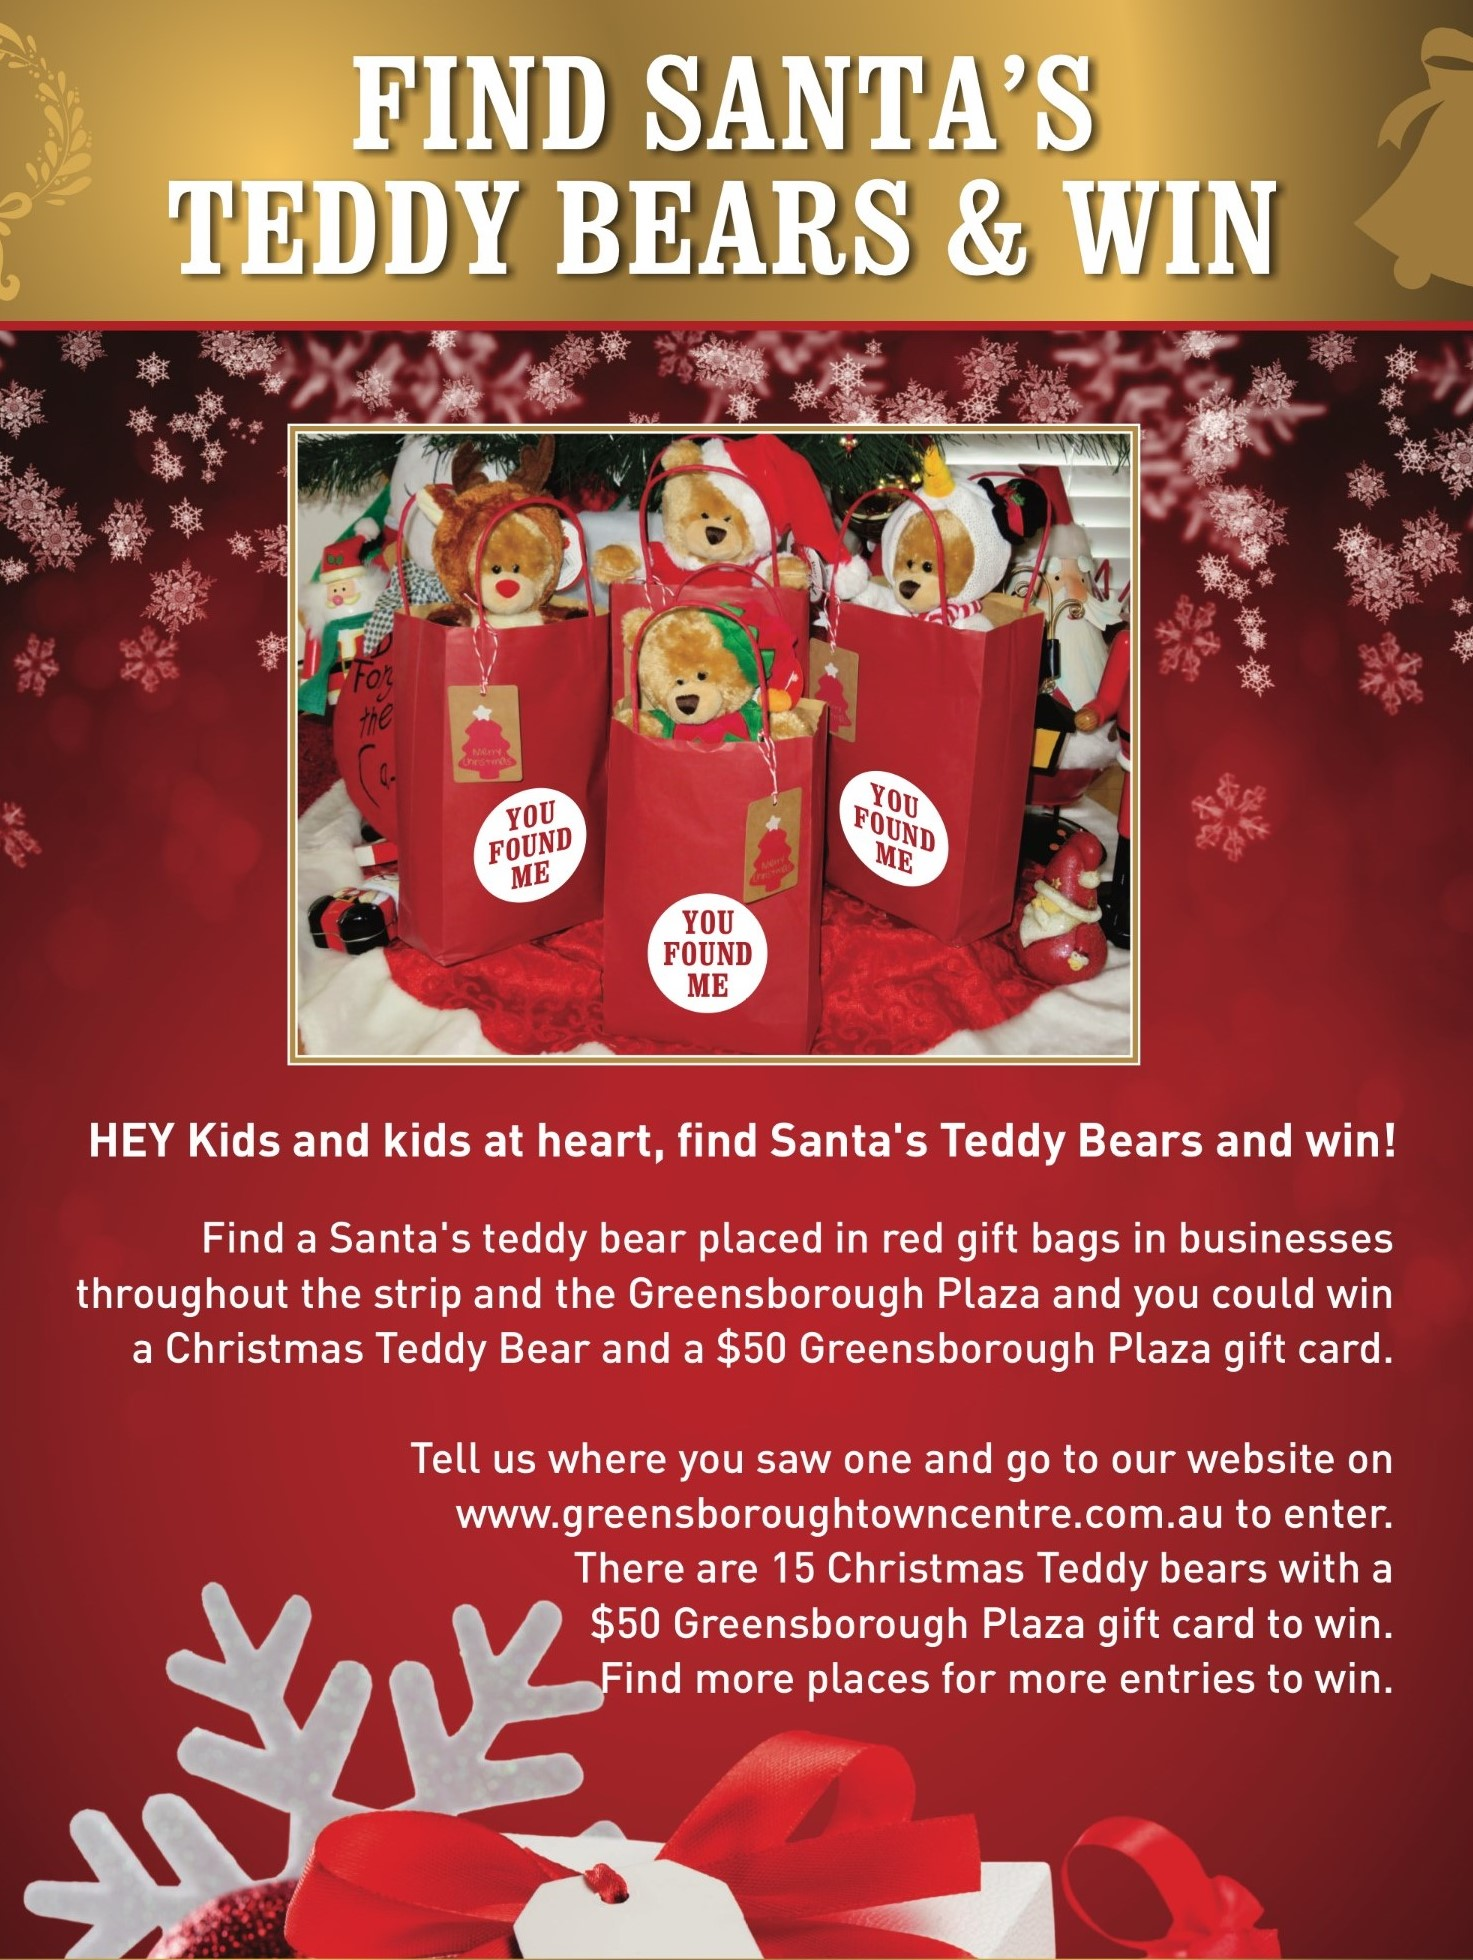 Find santas teddy bears win greensborough town centre enter the competition name reheart Choice Image